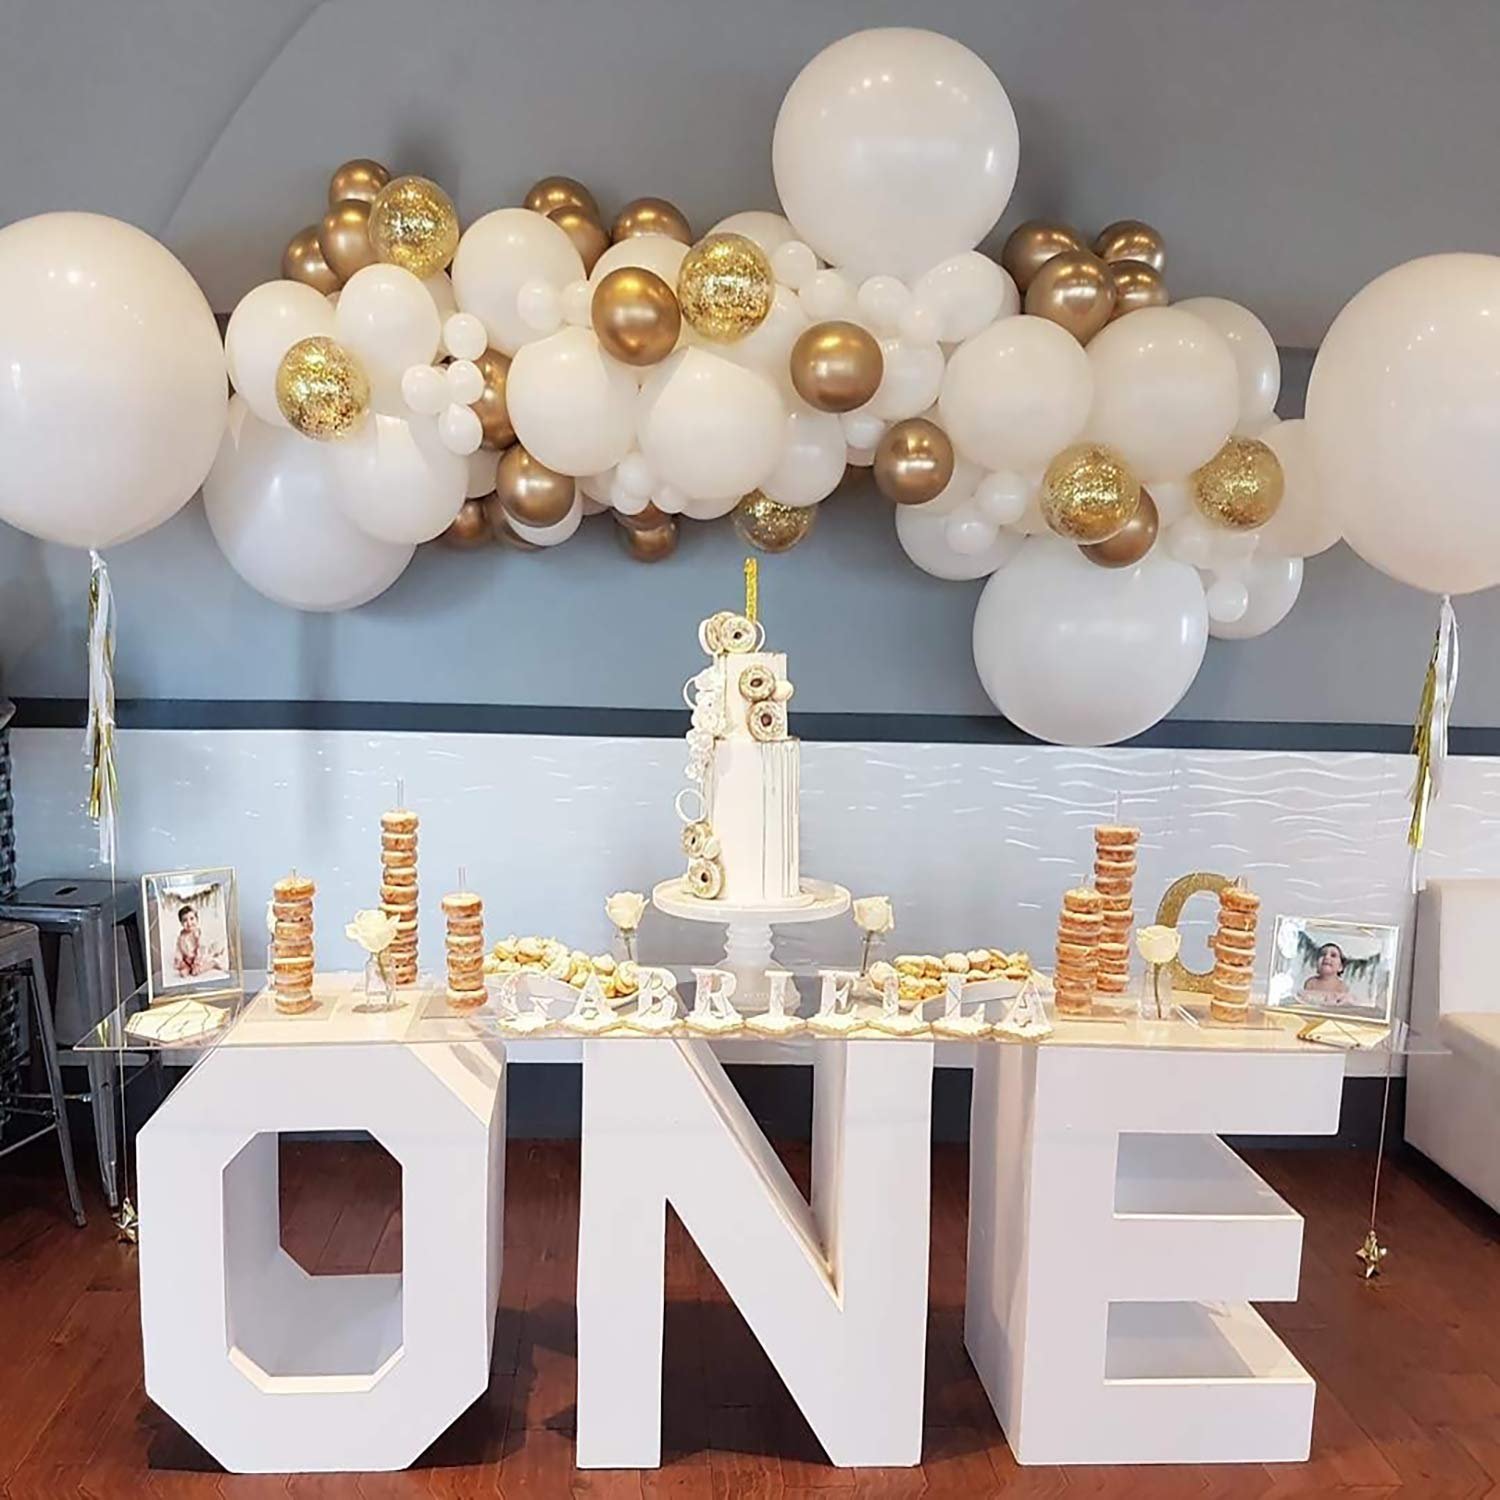 Balloons/Balloon Arch Garland Kit 104 Pcs -White Gold Confetti Balloons,Balloon for Parties, Party Wedding Birthday Balloons Decorations